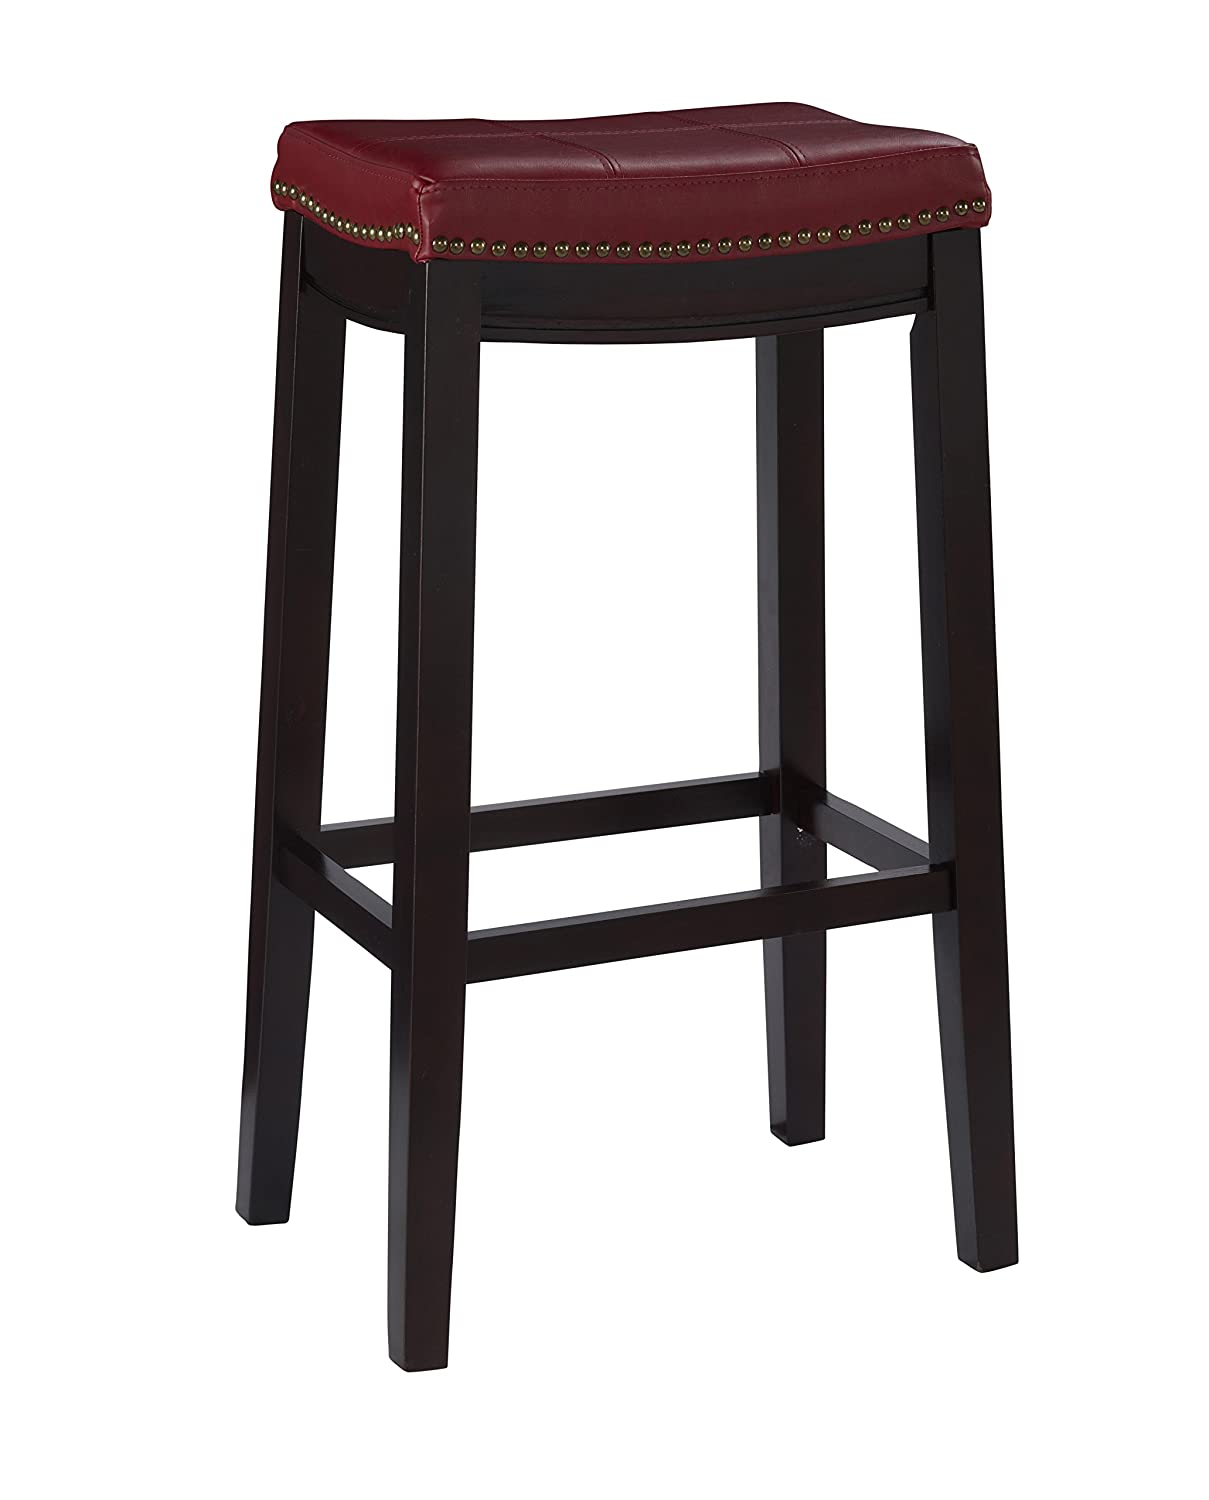 Linon Claridge Bar Stool, 32 x 18.75 x 13 , Red